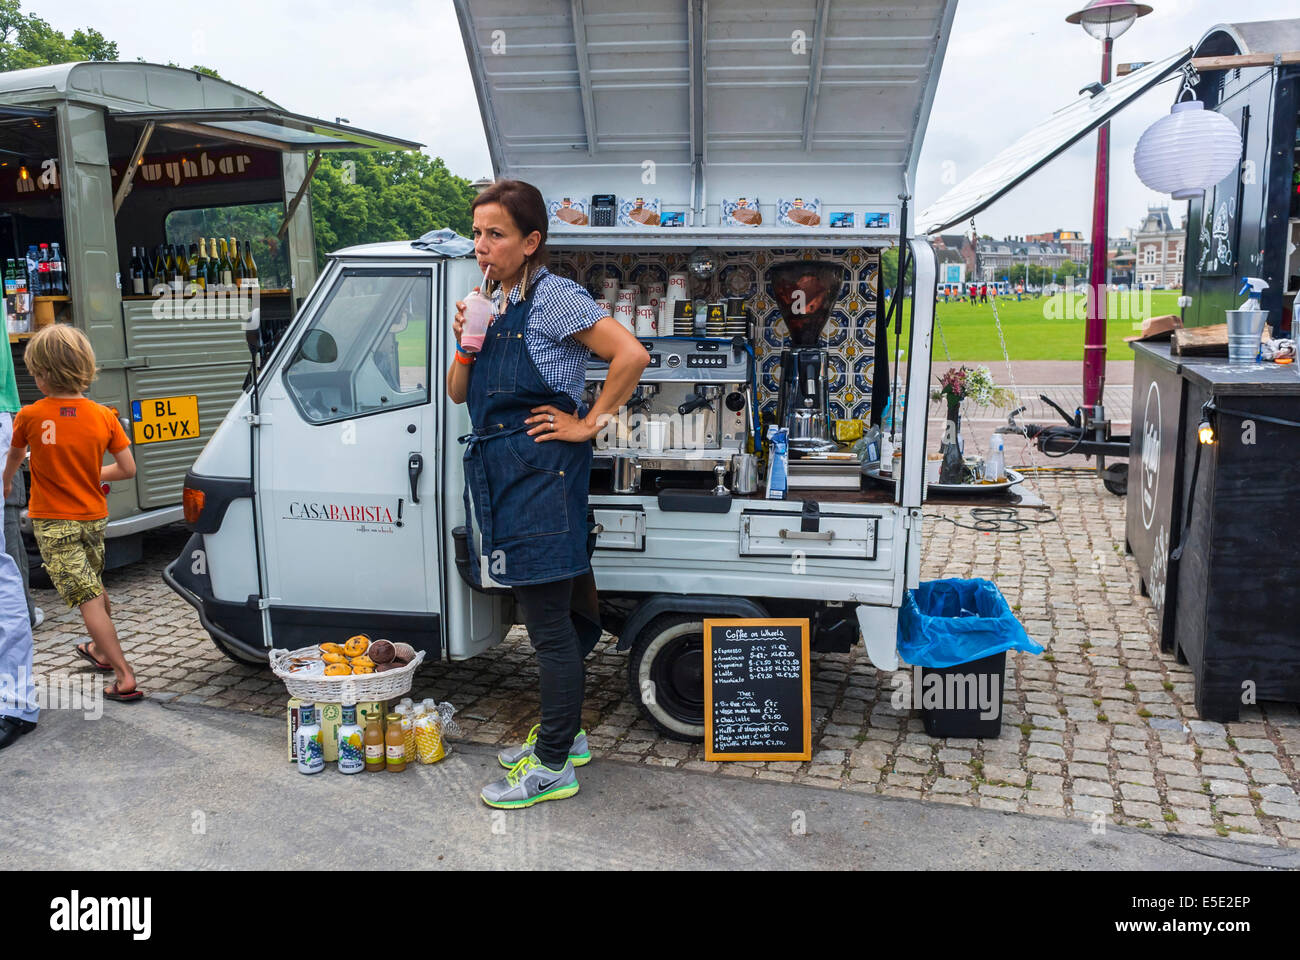 Amsterdam Holland Outside The Netherlands Women Selling Drinks Espresso Coffee From Small Food Truck Street Vendor